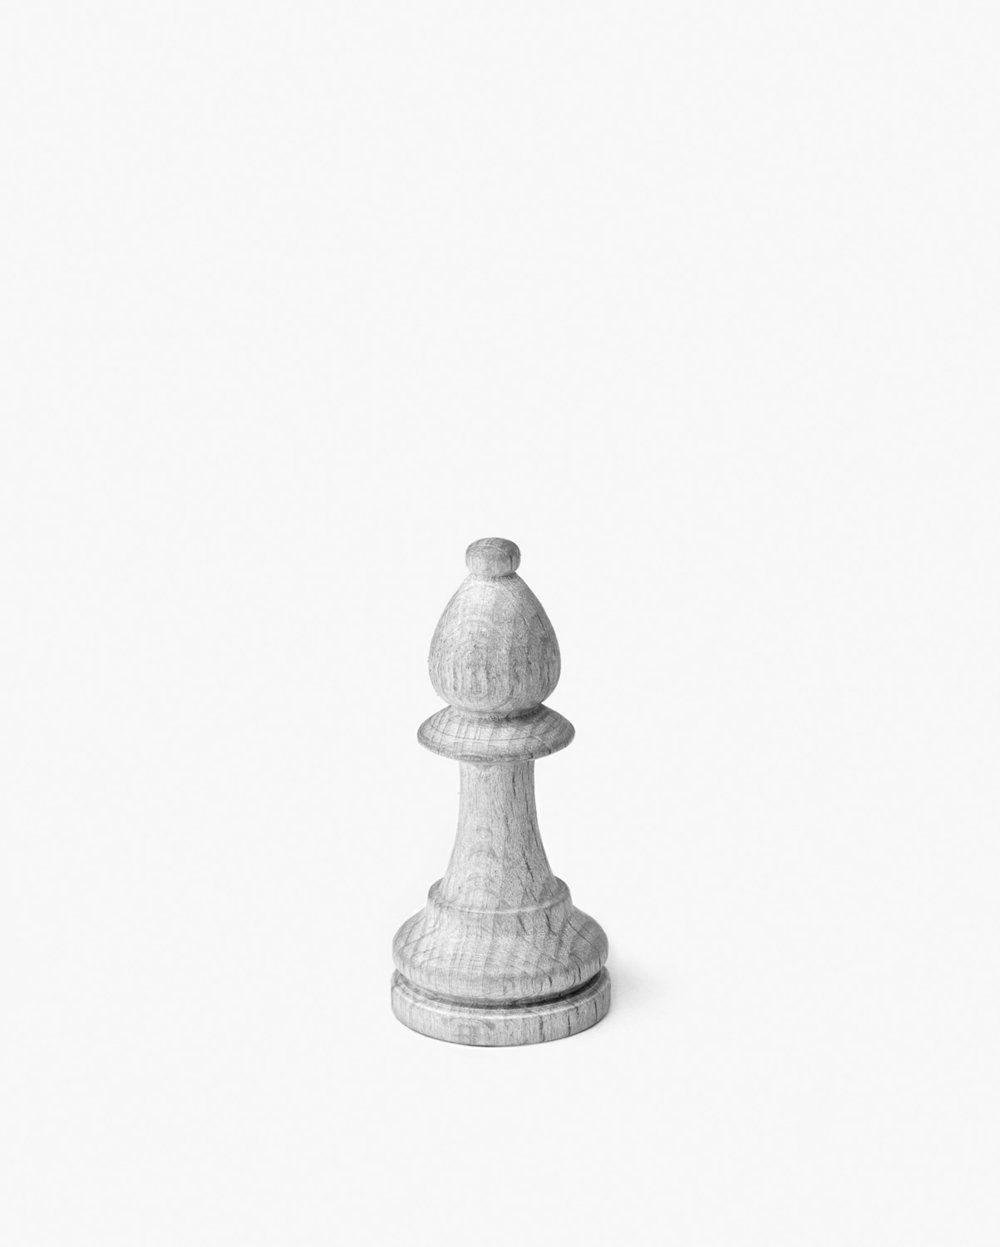 bishop_wh_Chess_II 39836 f3.jpg